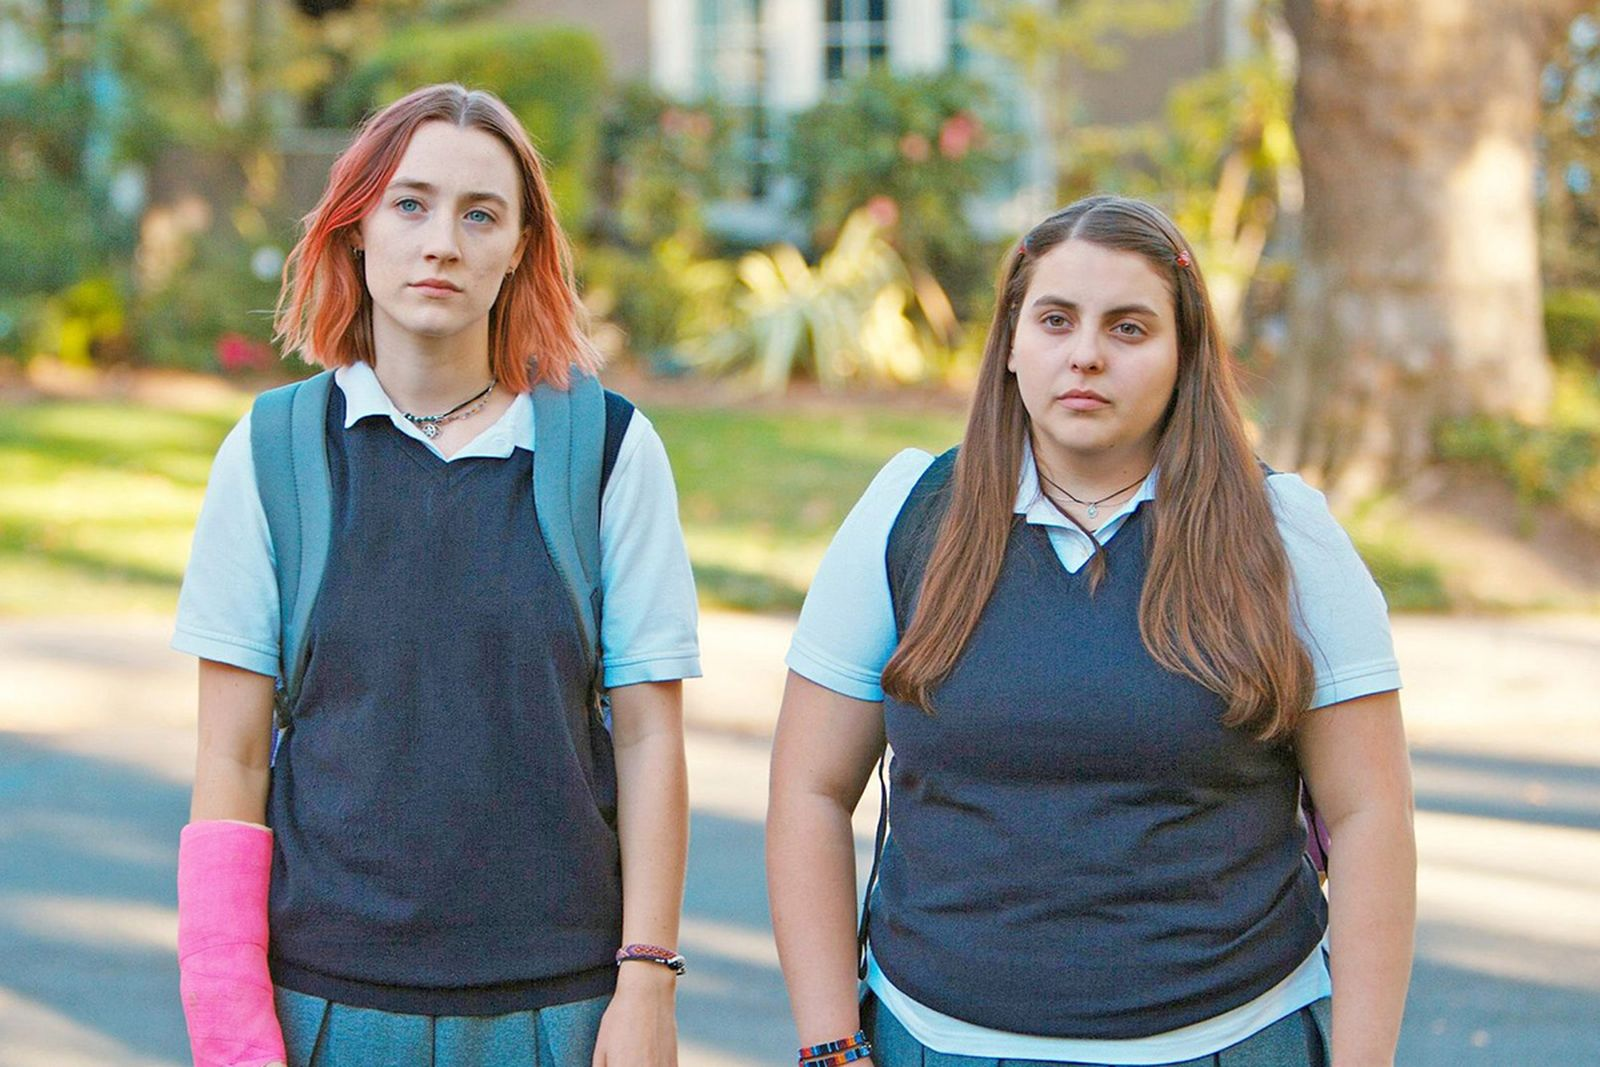 a24 coolest brand hollywood Lady Bird Mid90s jonah hill